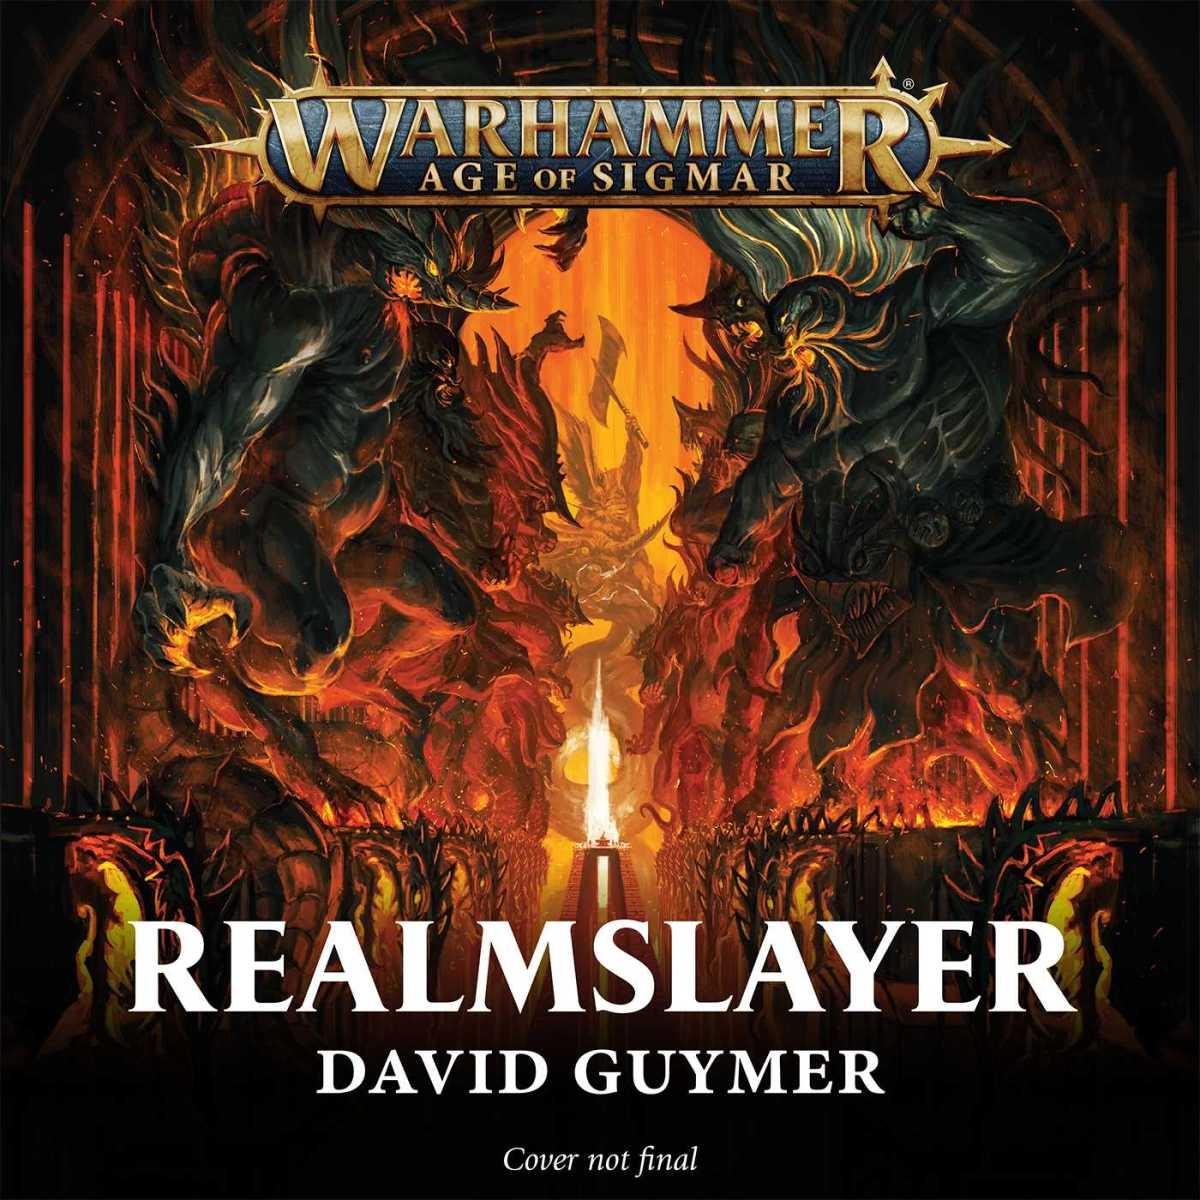 Upcoming: REALMSLAYER by David Guymer (Black Library)